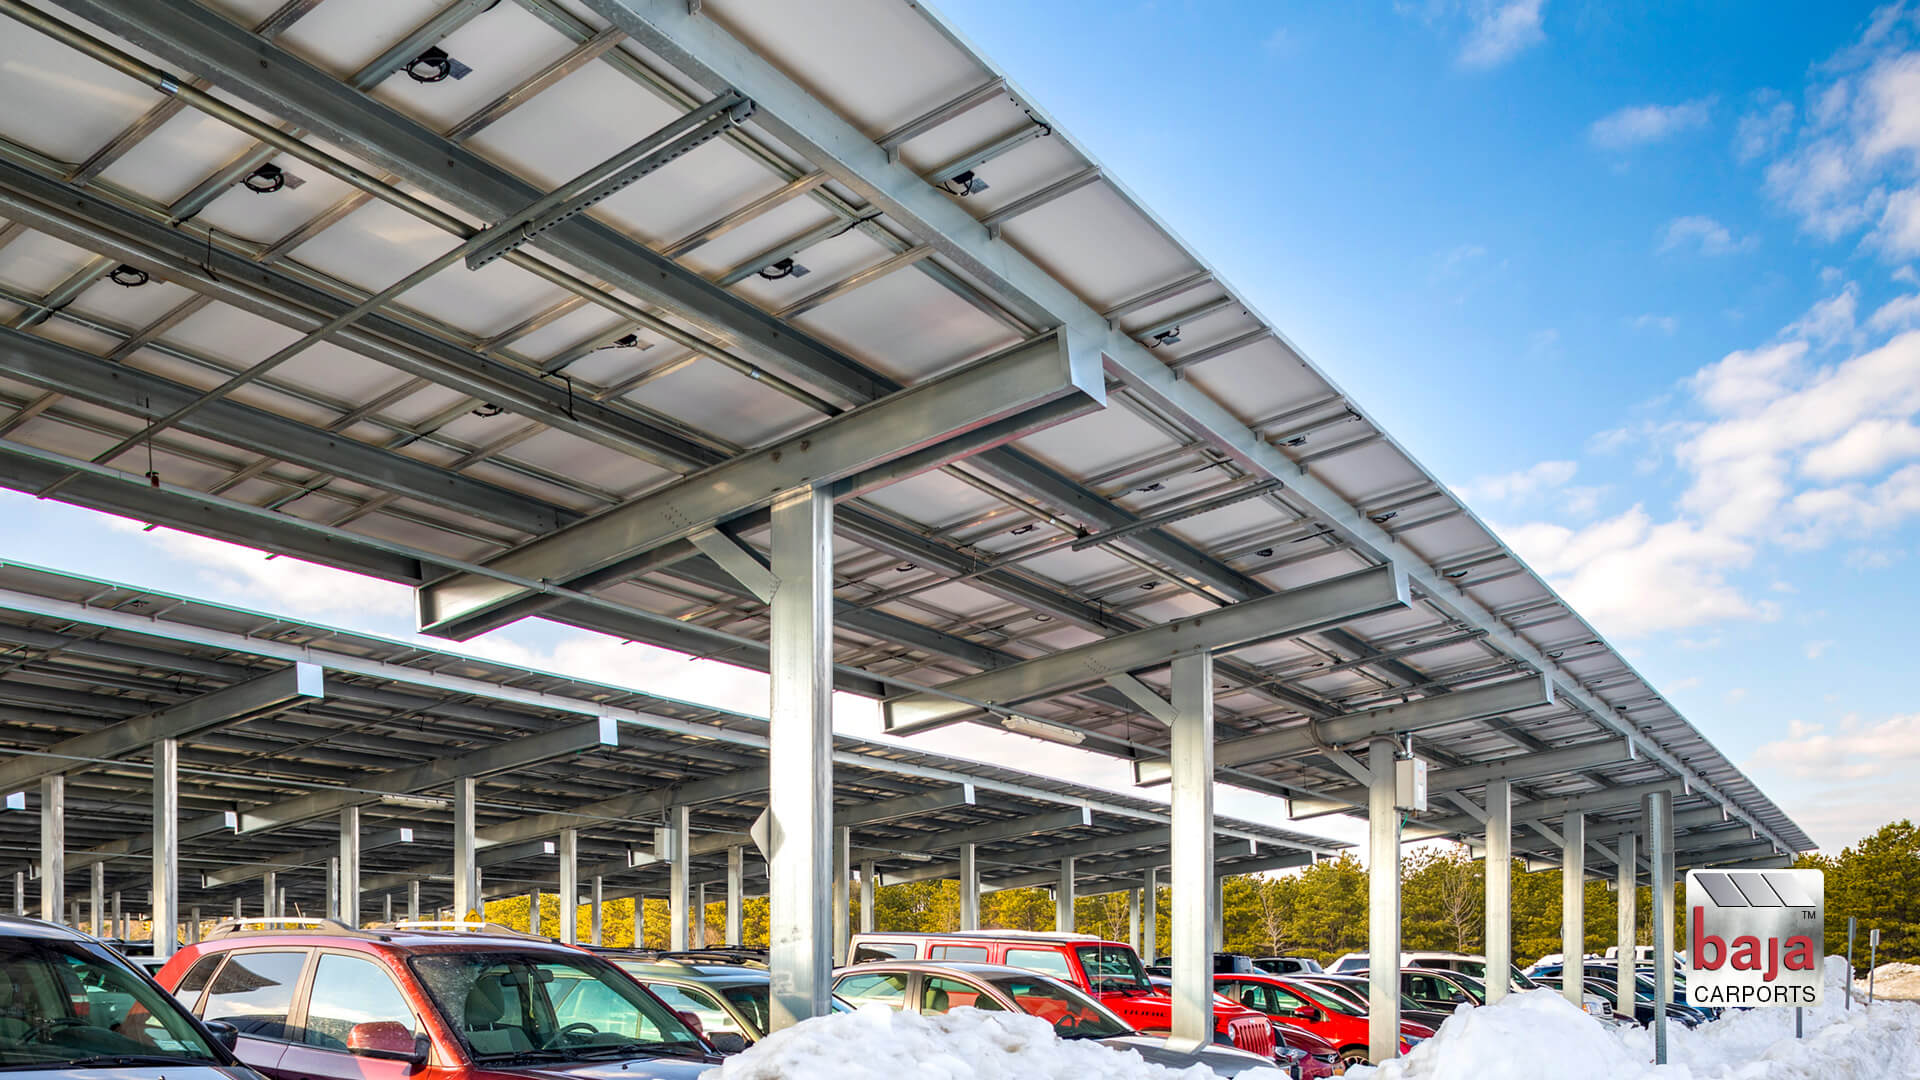 massive solar carport lot at deer park train station installed by baja carports